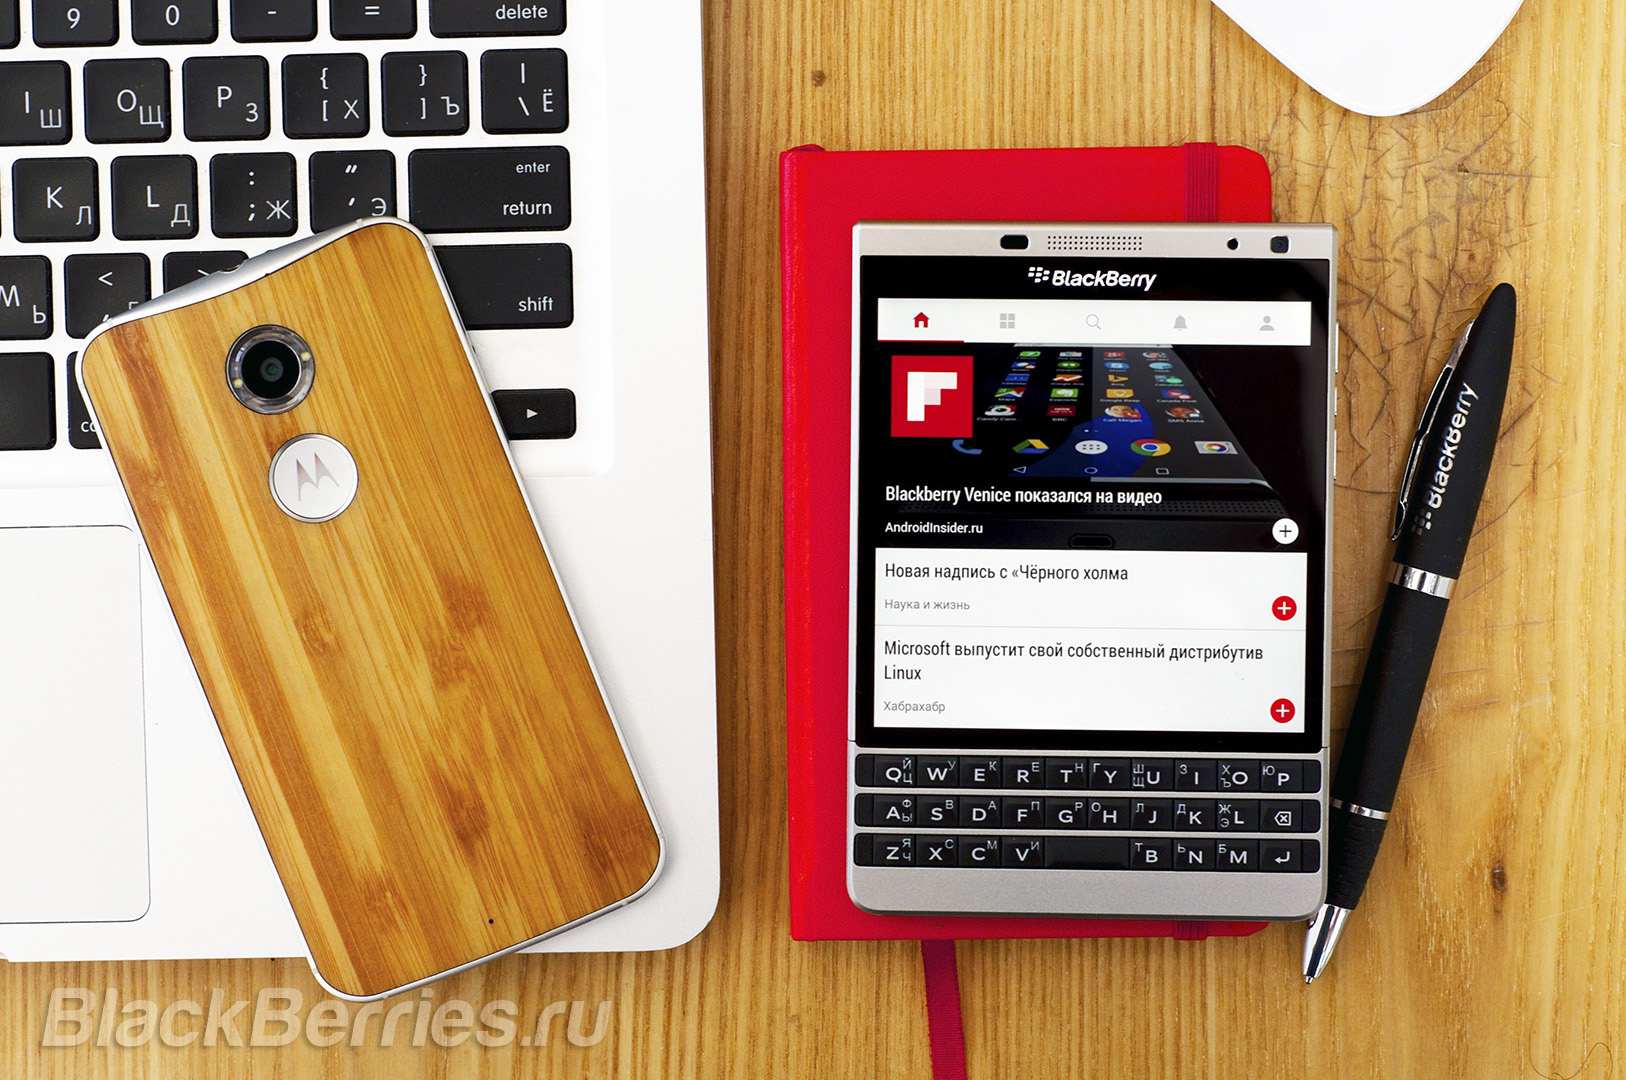 BlackBerry-Passport-SE-Apps-19-09-22